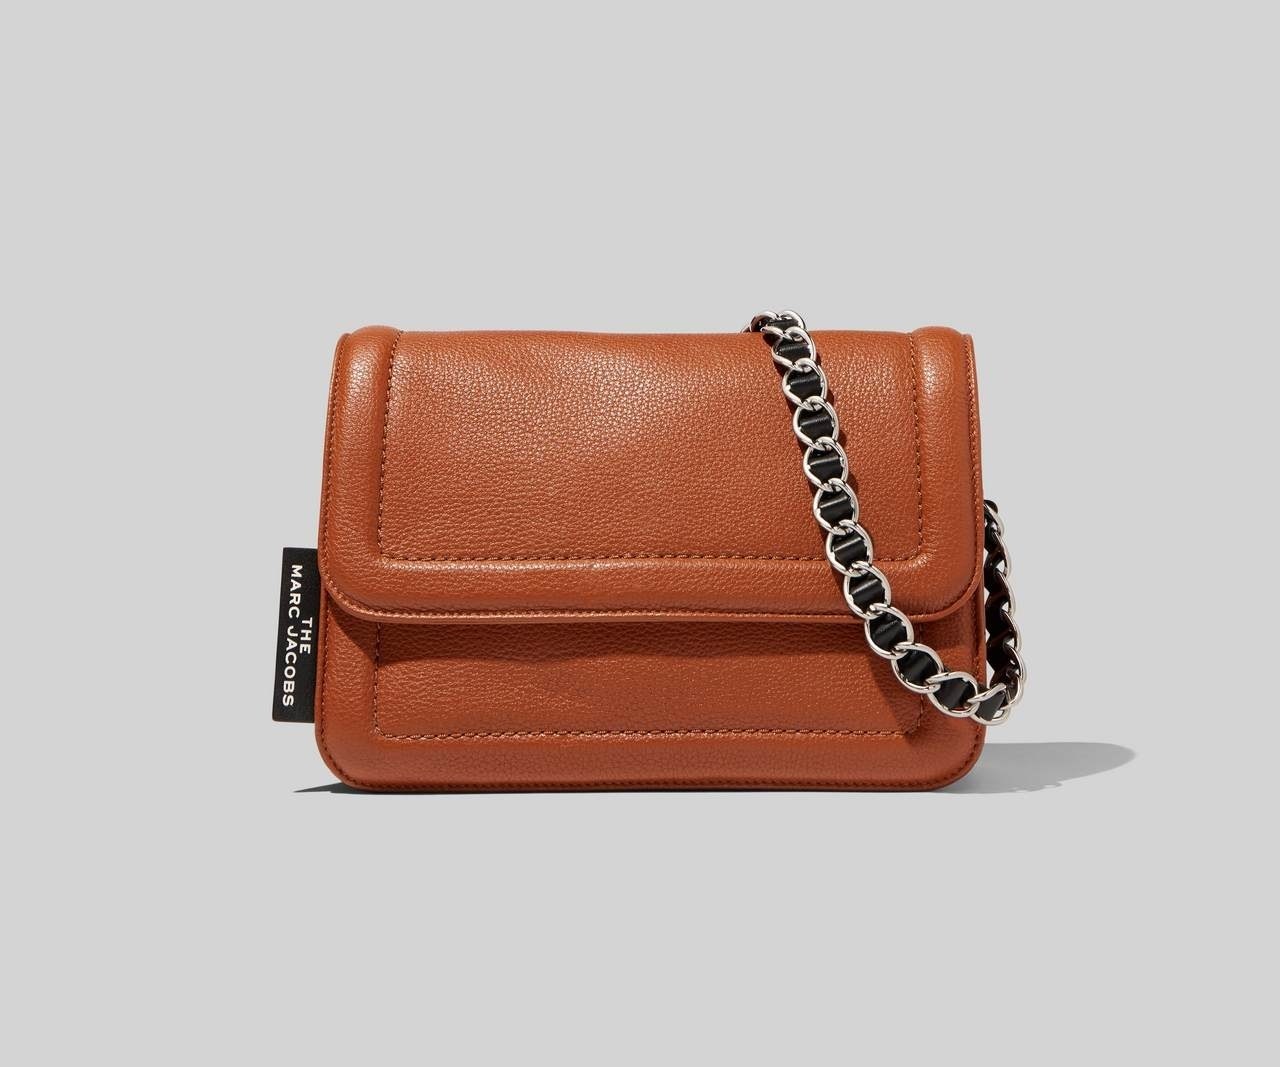 the camel colored purse